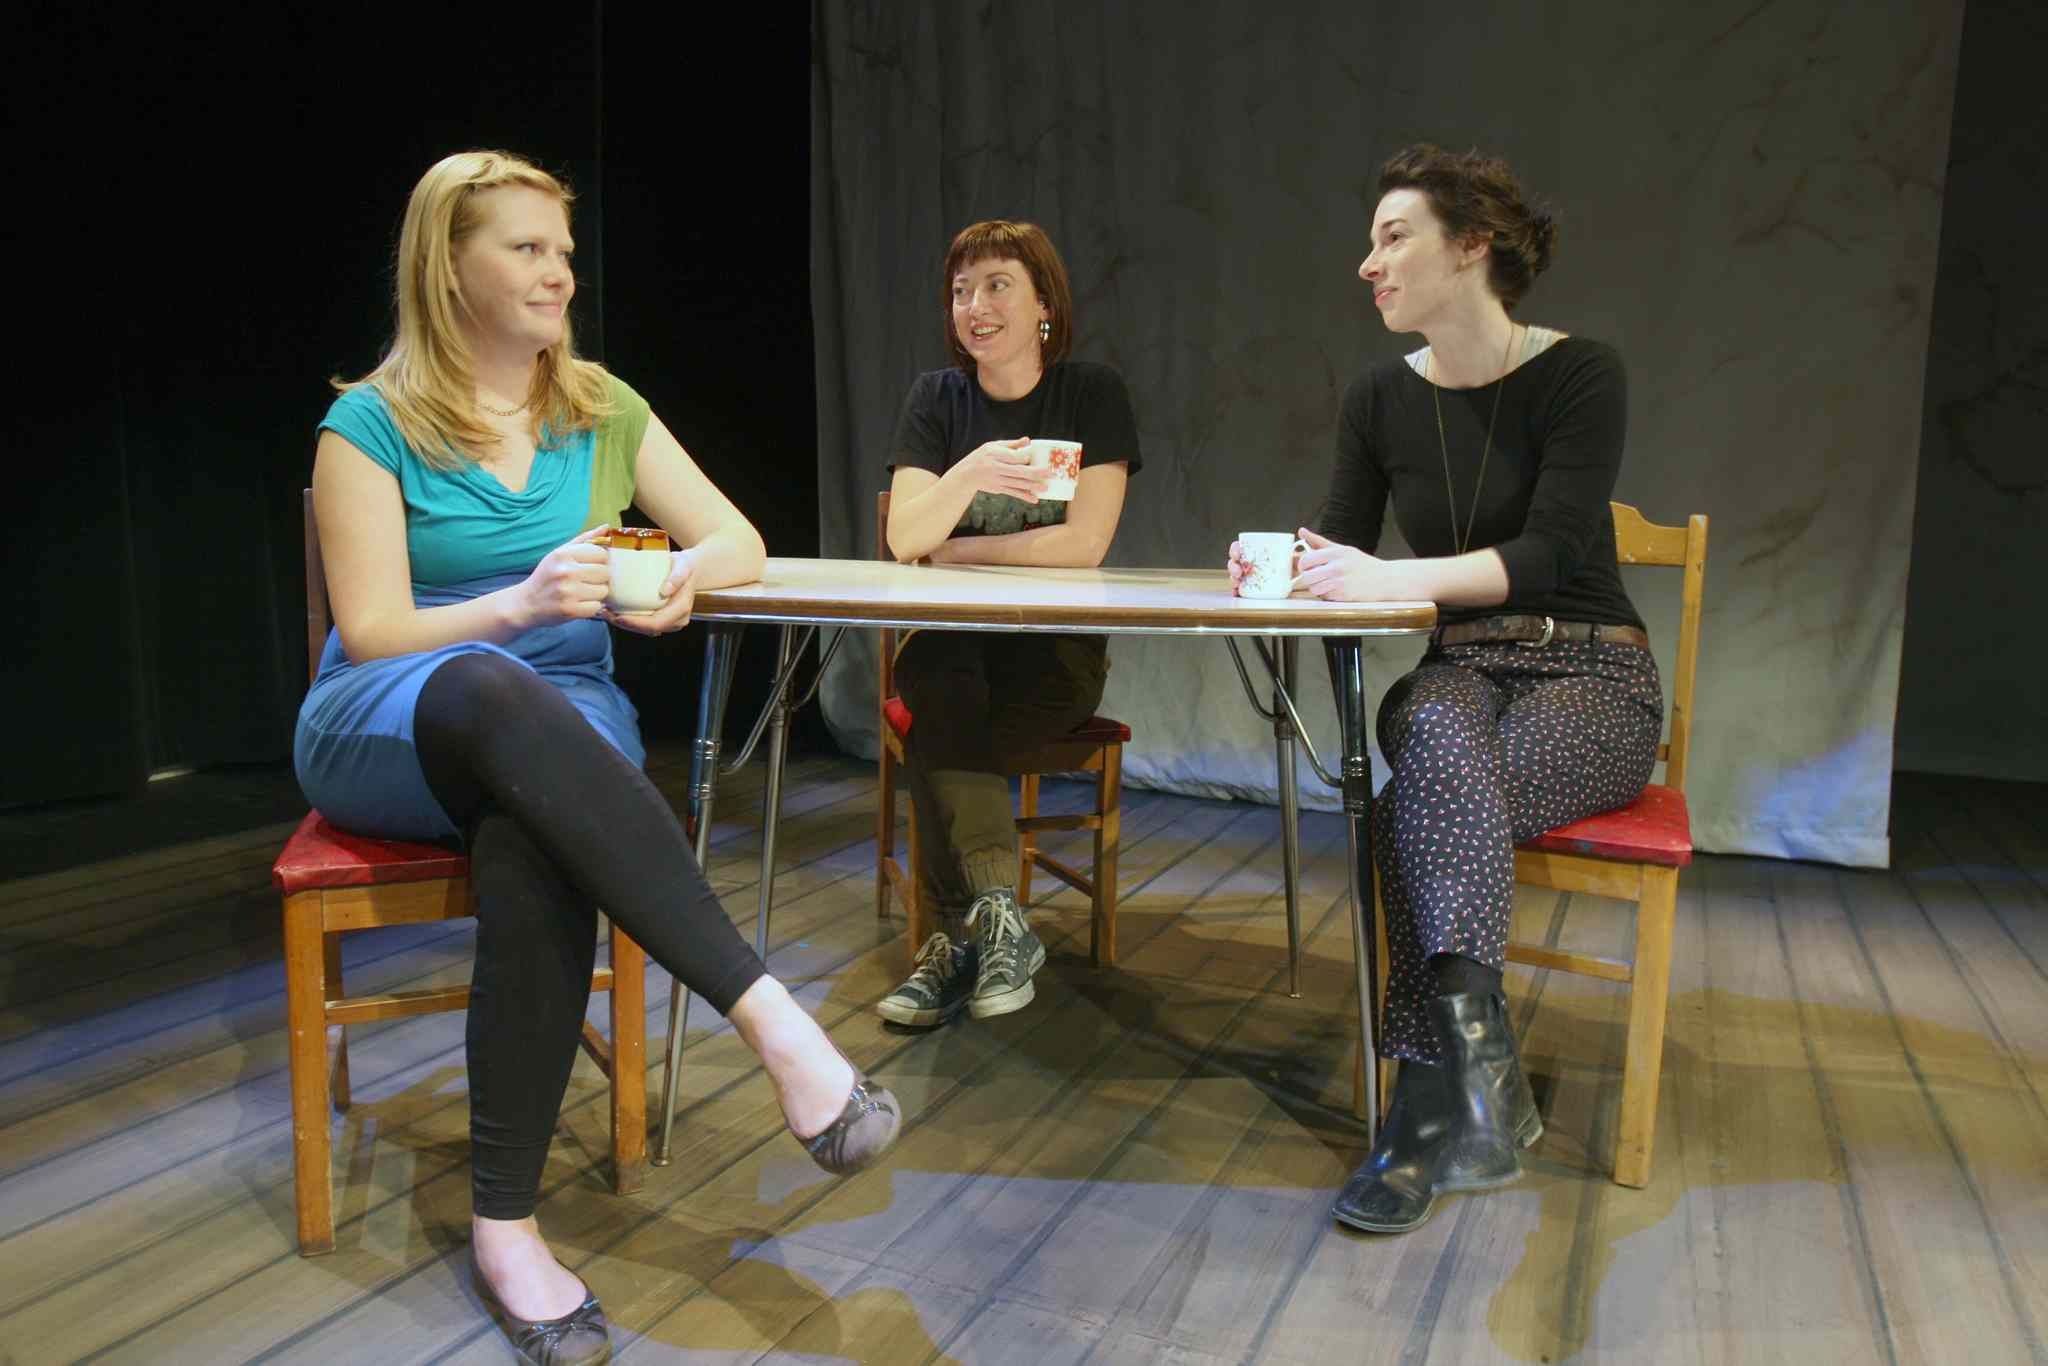 Andraea Sartison (from left) the director and co-writer of I Dream of Diesel, with Claire Therese Friesen and Gwendolyn Collins, who are in the play.